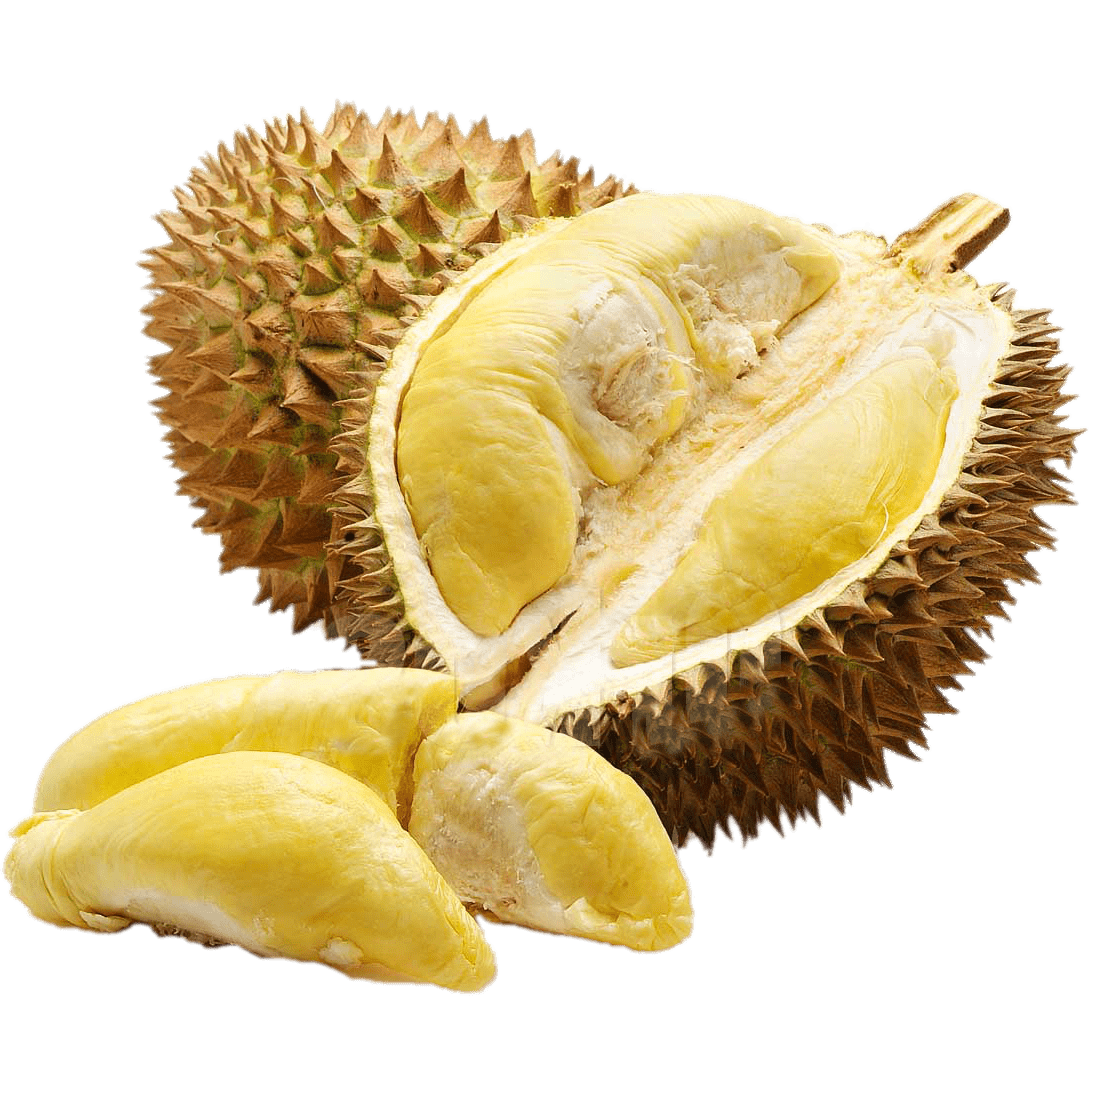 PNG Durian - 135706